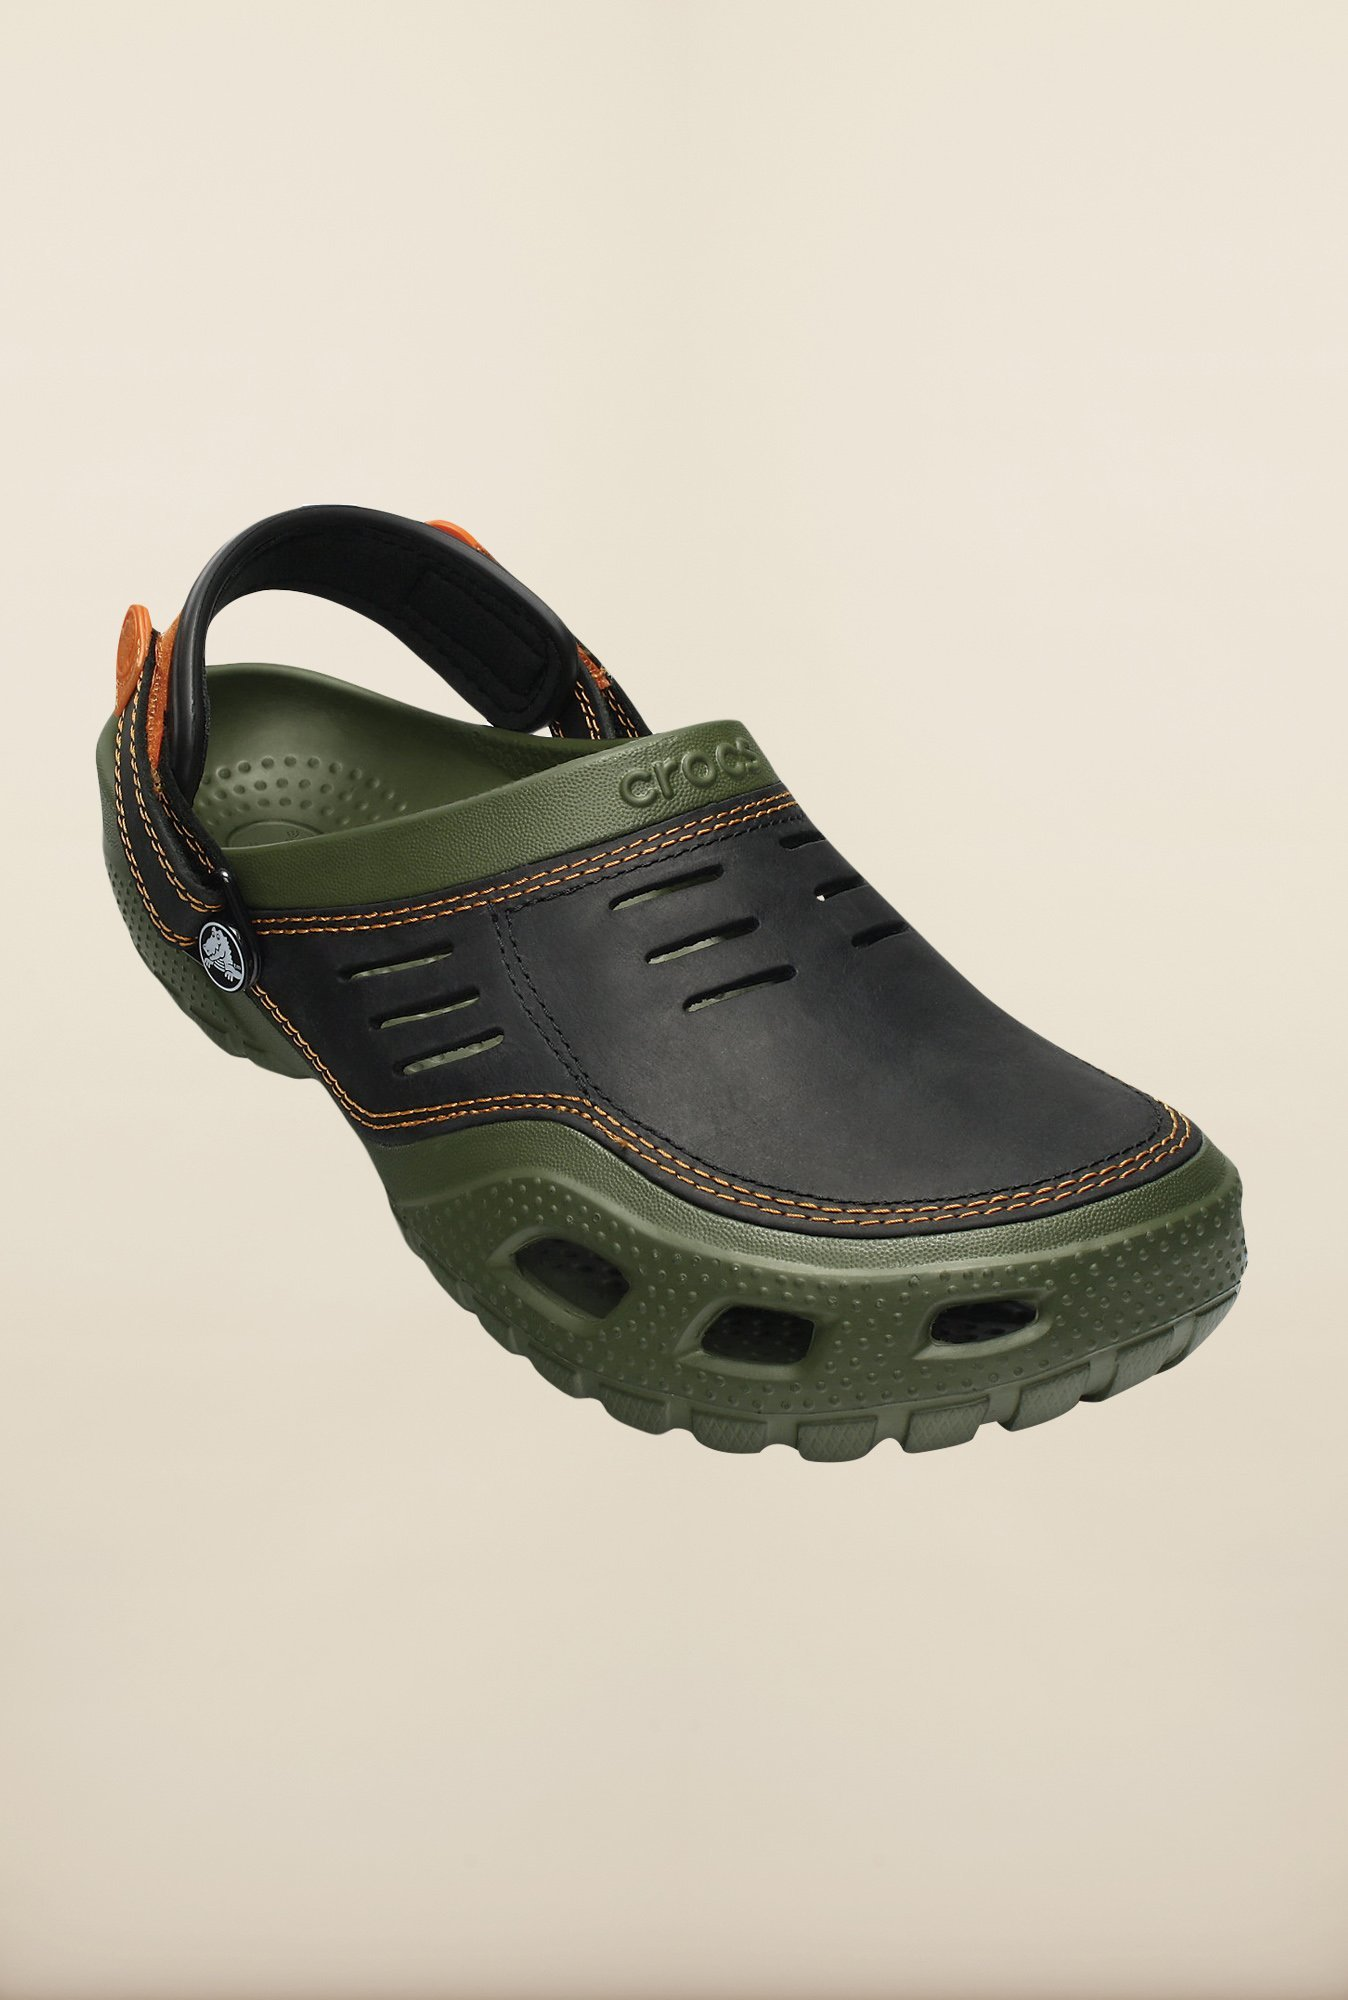 b4ab0cf06 Buy Crocs Yukon Sport Army Green   Black Clogs Online at best price ...